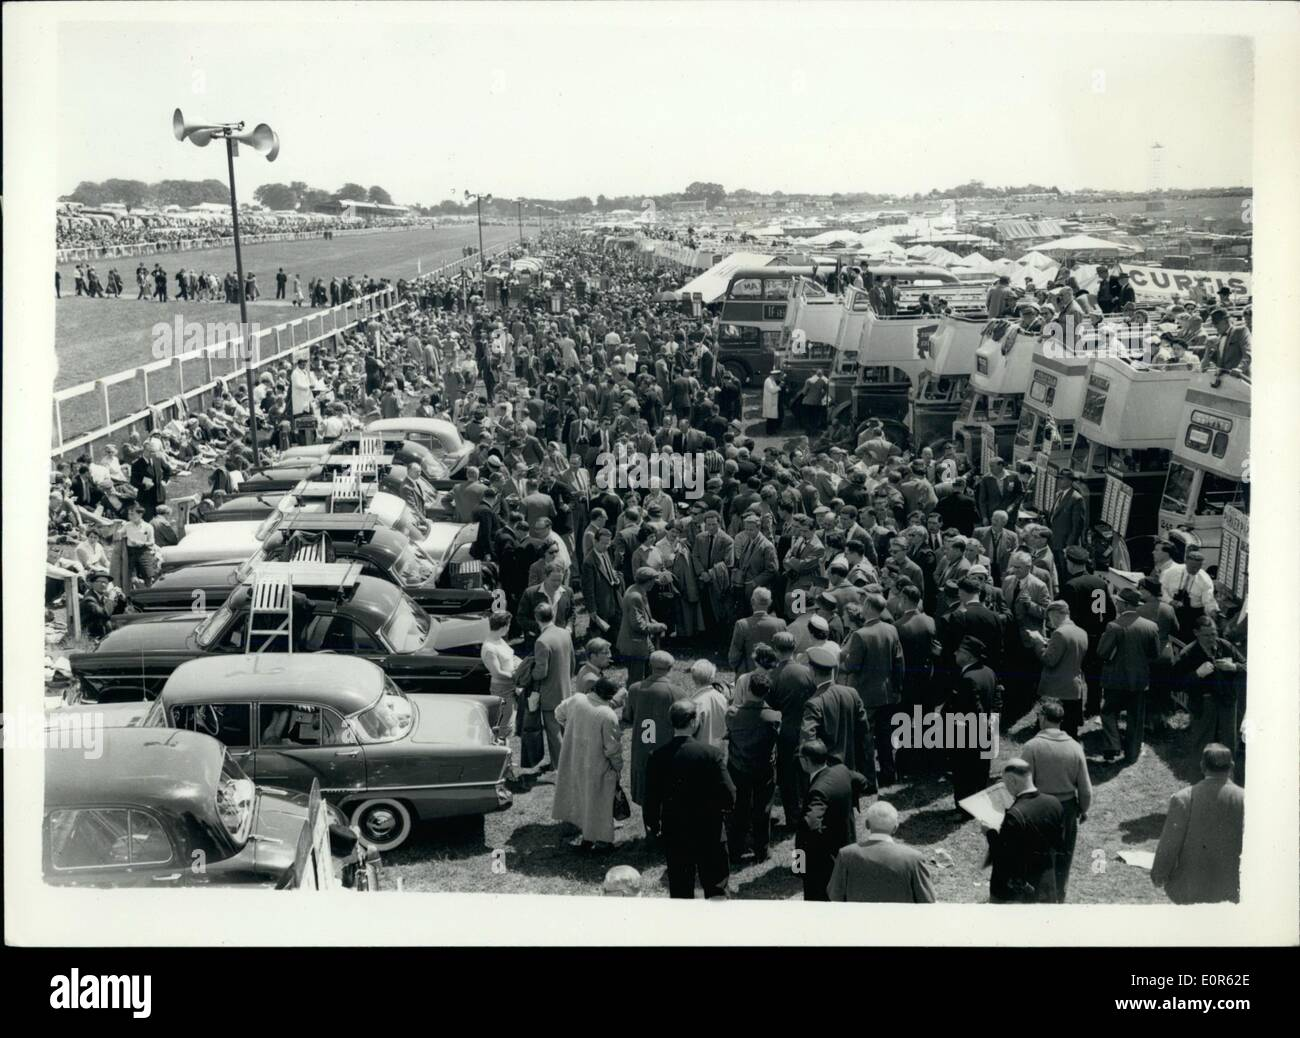 Jun. 06, 1958 - Derby Day - At Epsom. General View. Photo shows General view showing a section of the huge crowd - at Epsom today - for the 1958 Derby. - Stock Image